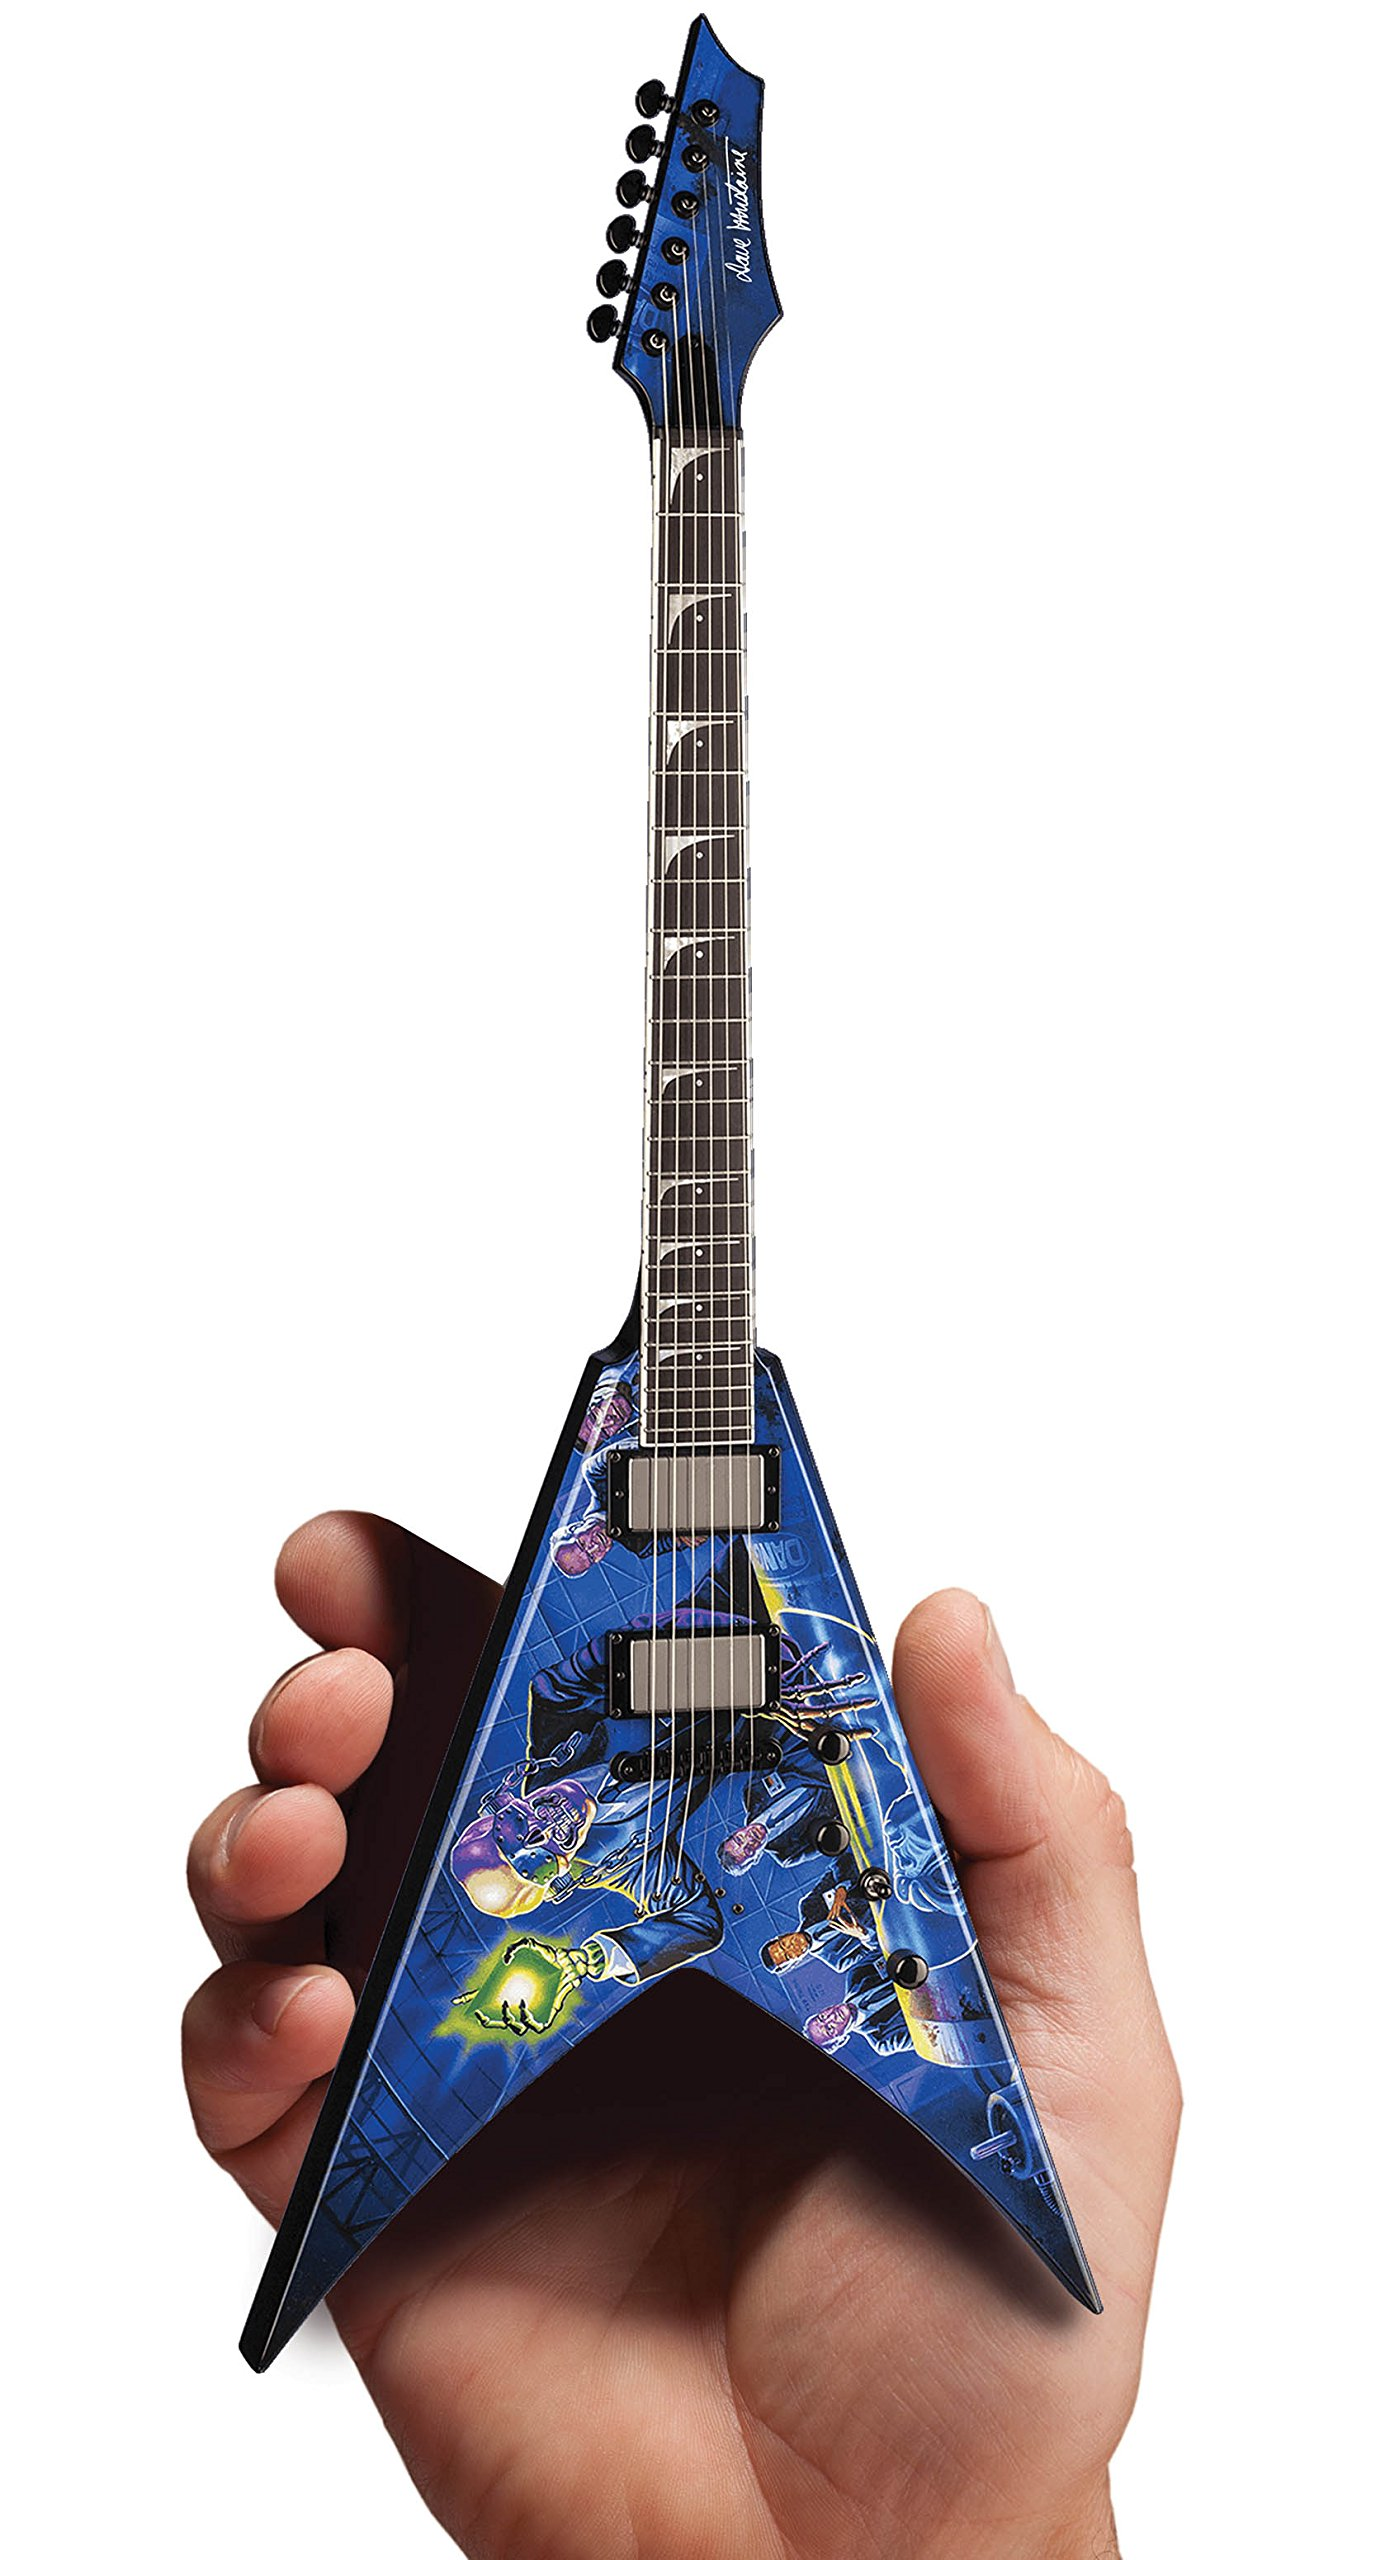 Axe Heaven Megadeth Dave Mustaine Rust In Peace Dean 1/4 Scale Guitar by AXE HEAVEN (Image #1)